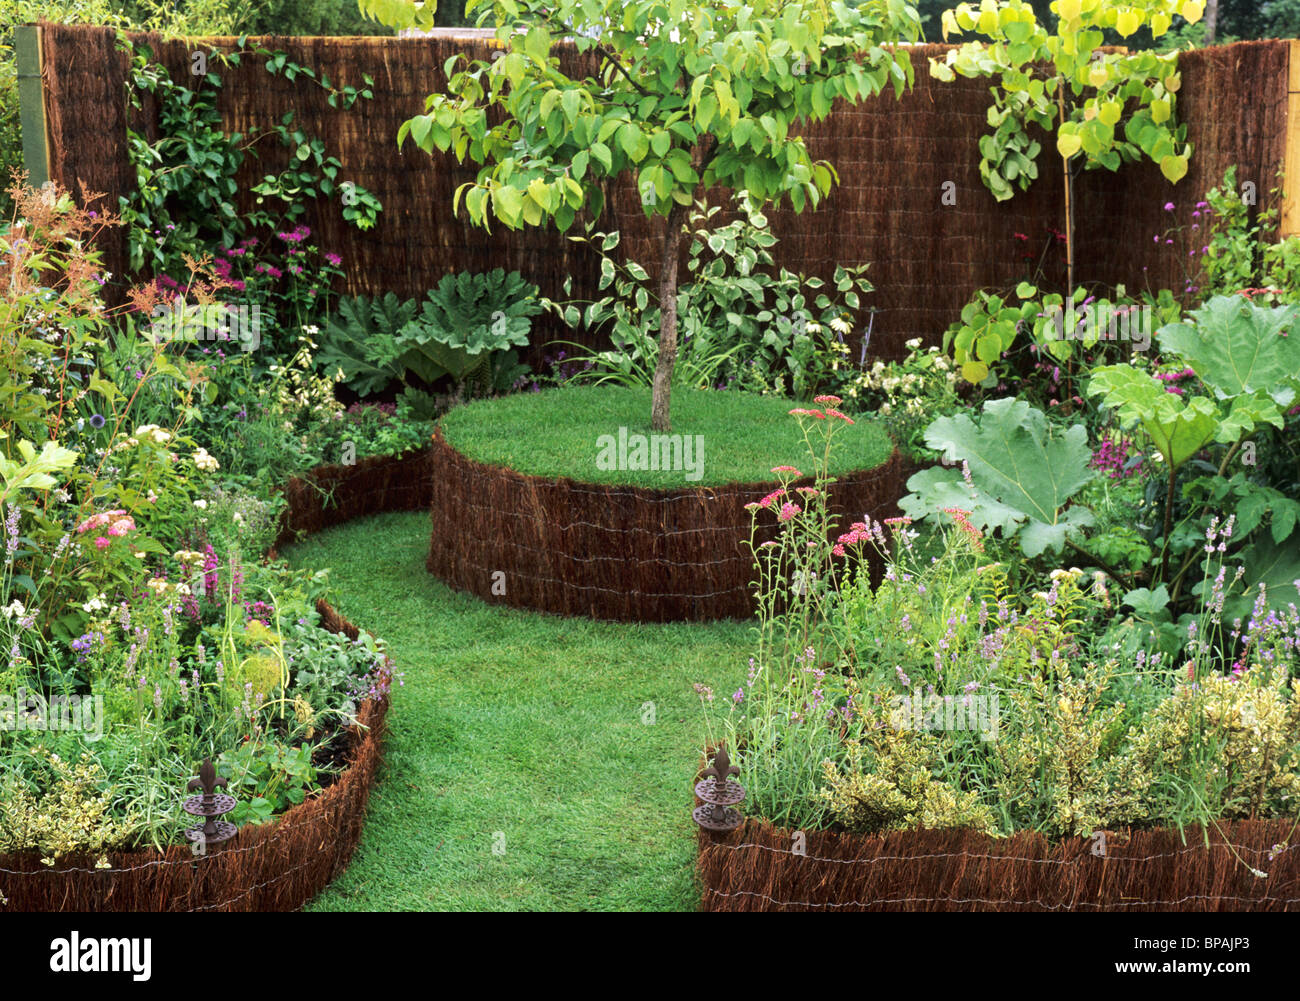 Medicinal Plants Planting Small Gardens Plant Stock Photos